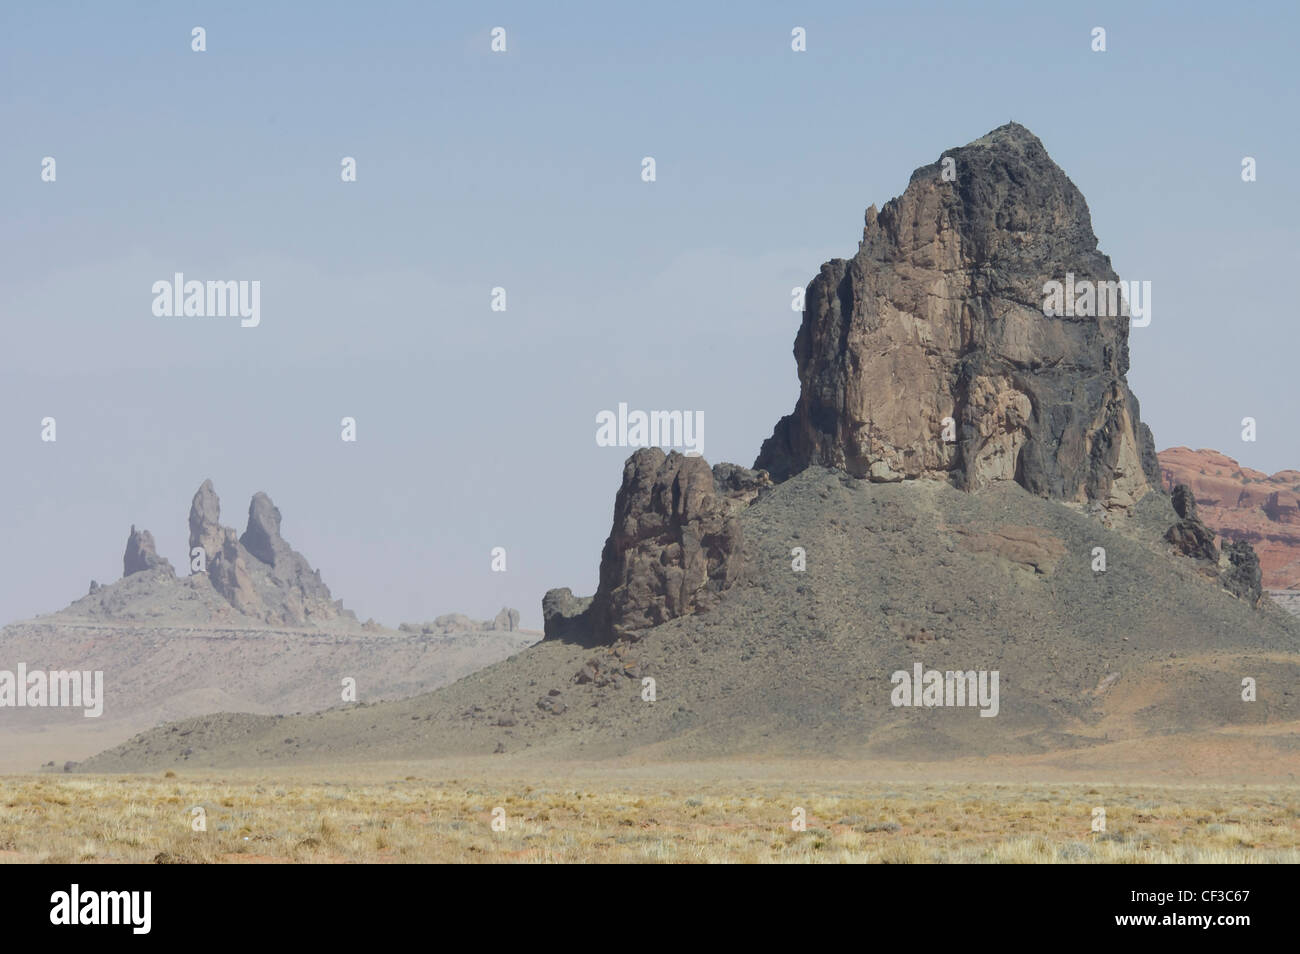 Volcanic rock formation of Monument Valley, Arizona, USA - Stock Image